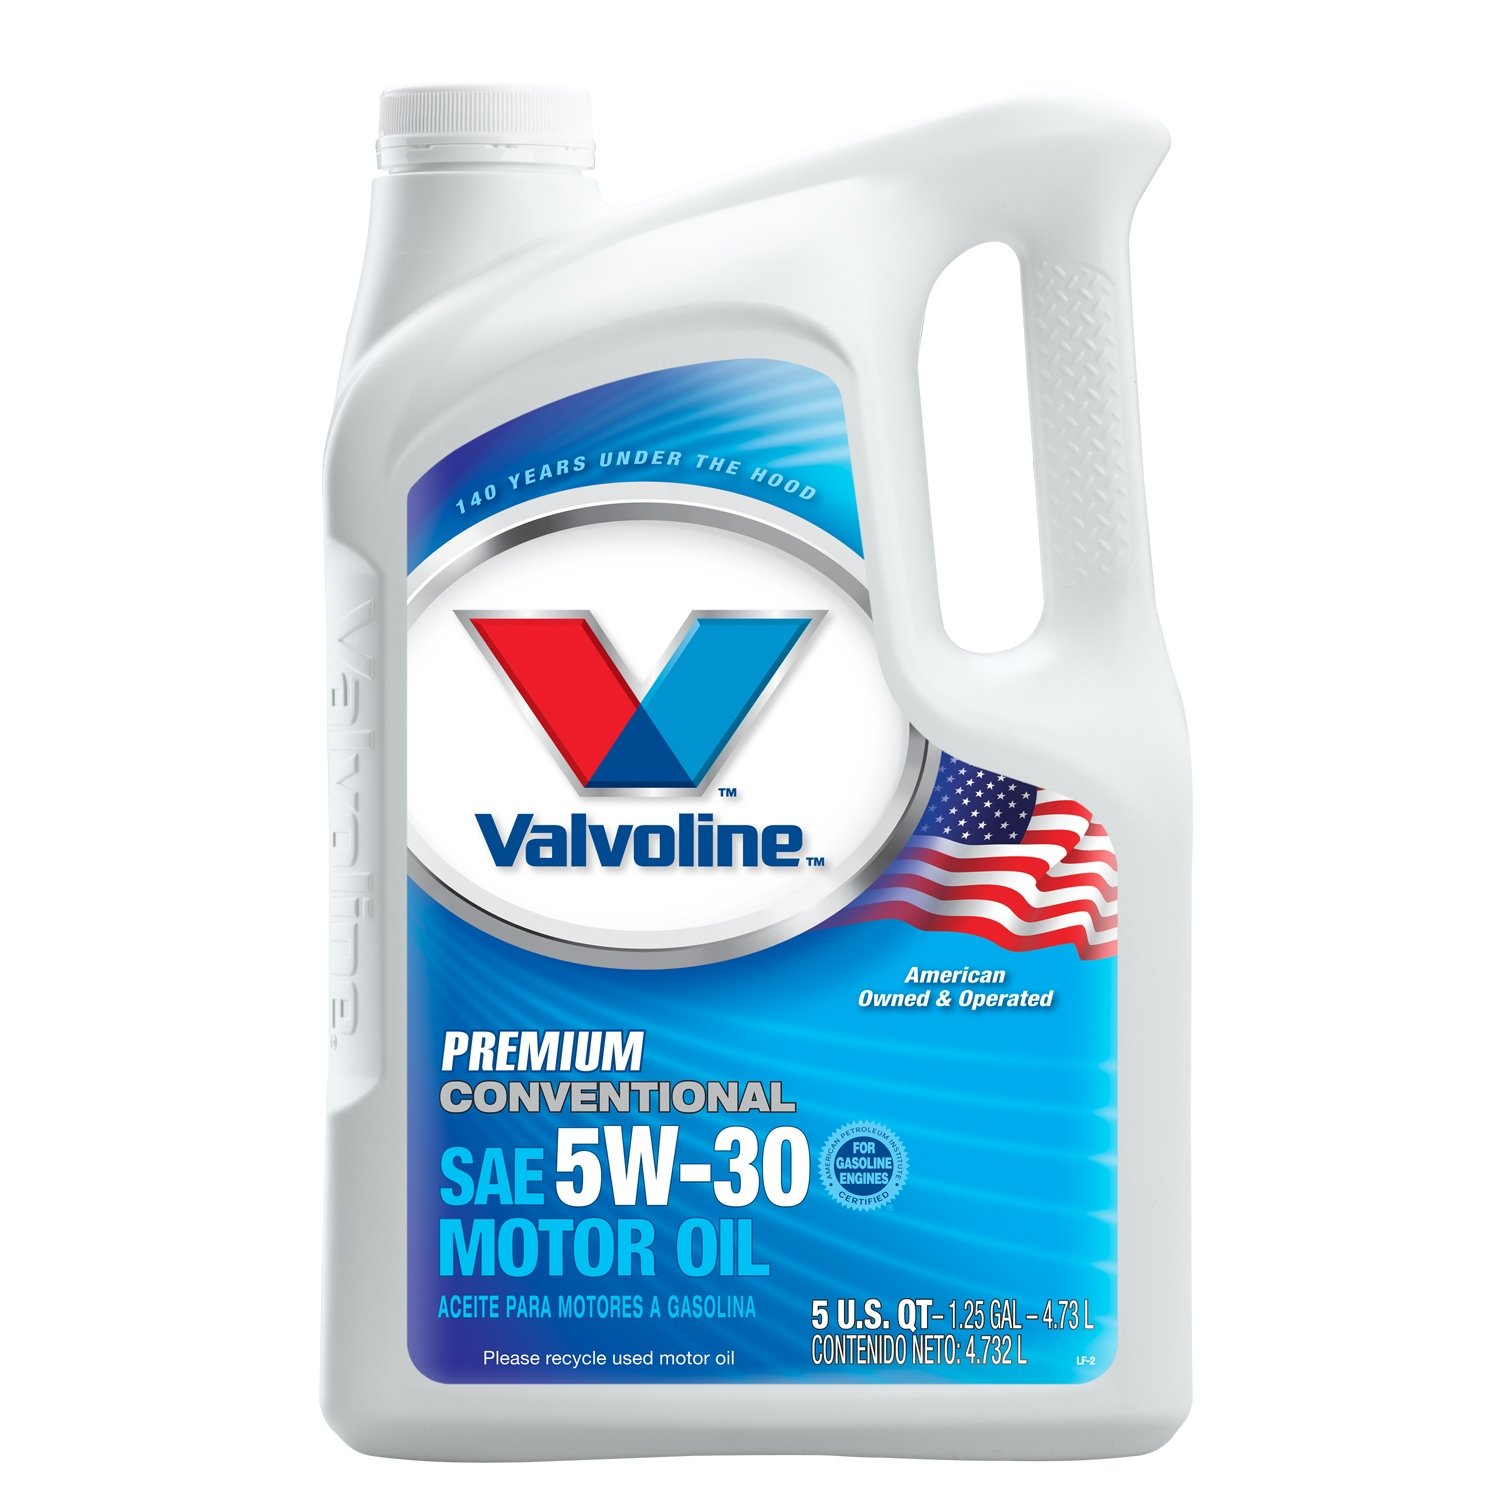 Valvoline 5W-30 Premium Conventional Motor Oil - 5qt (Case of 3) (779461-3PK)